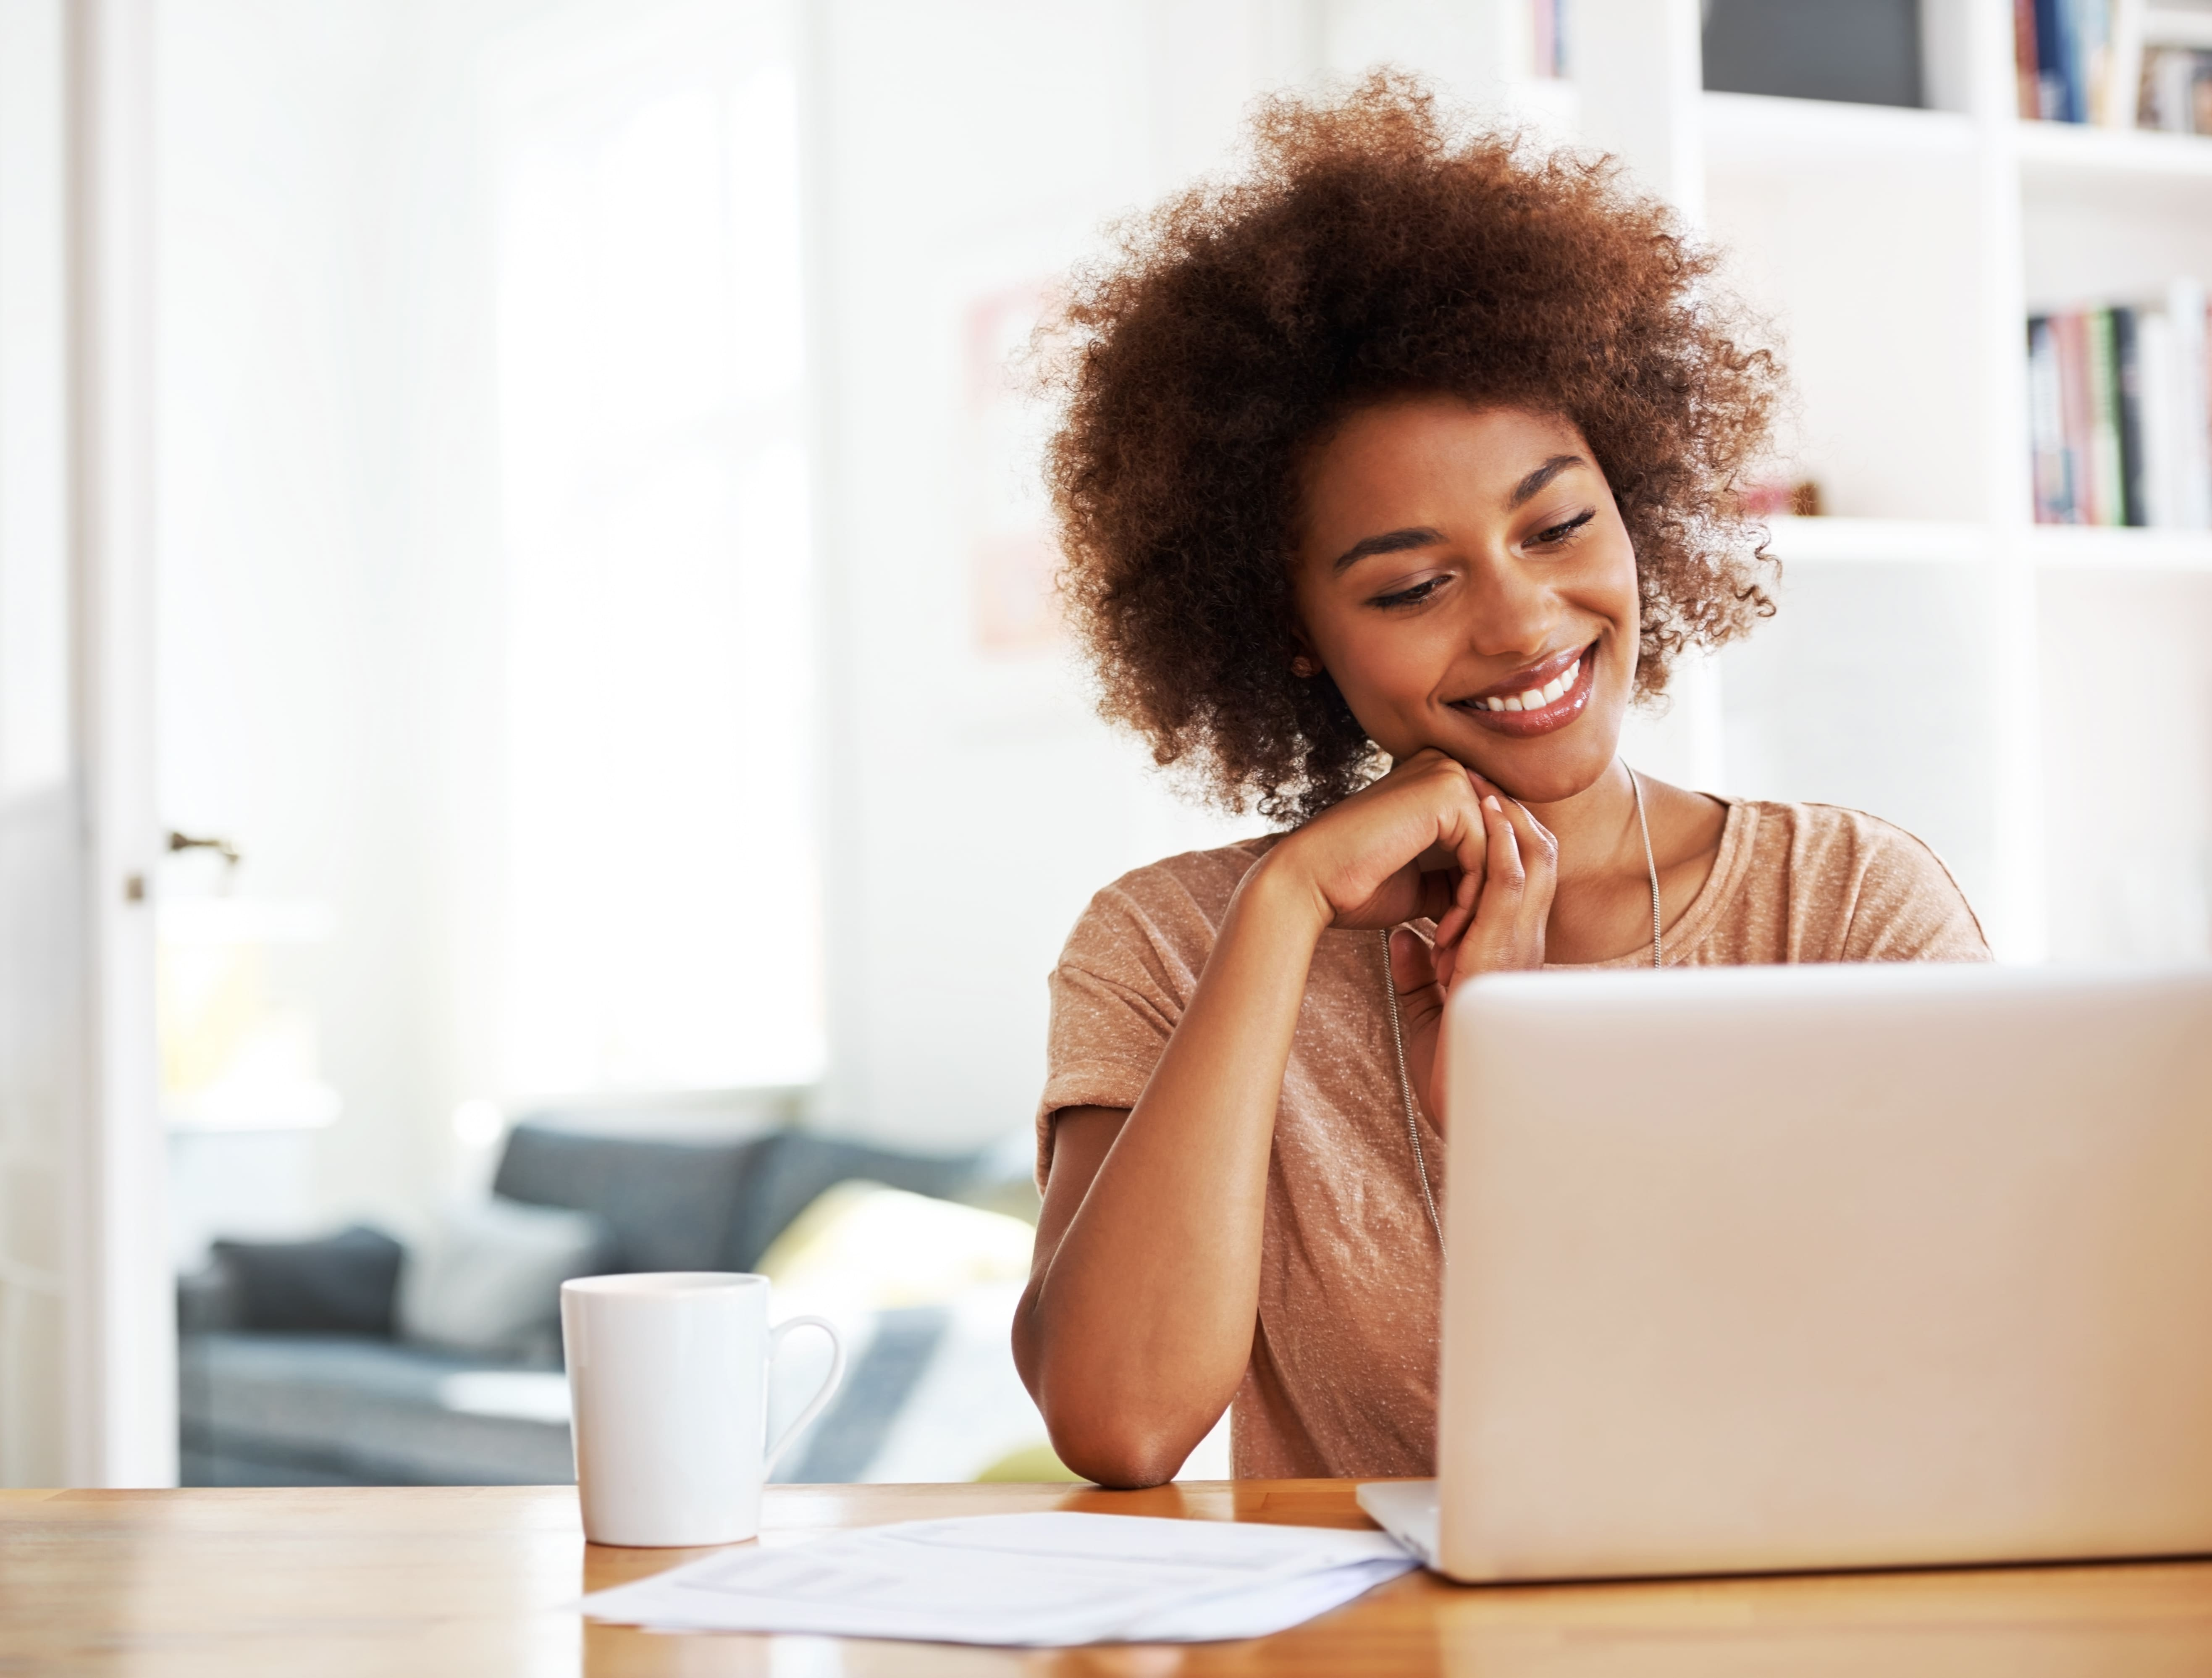 woman smiling as she works in her home office